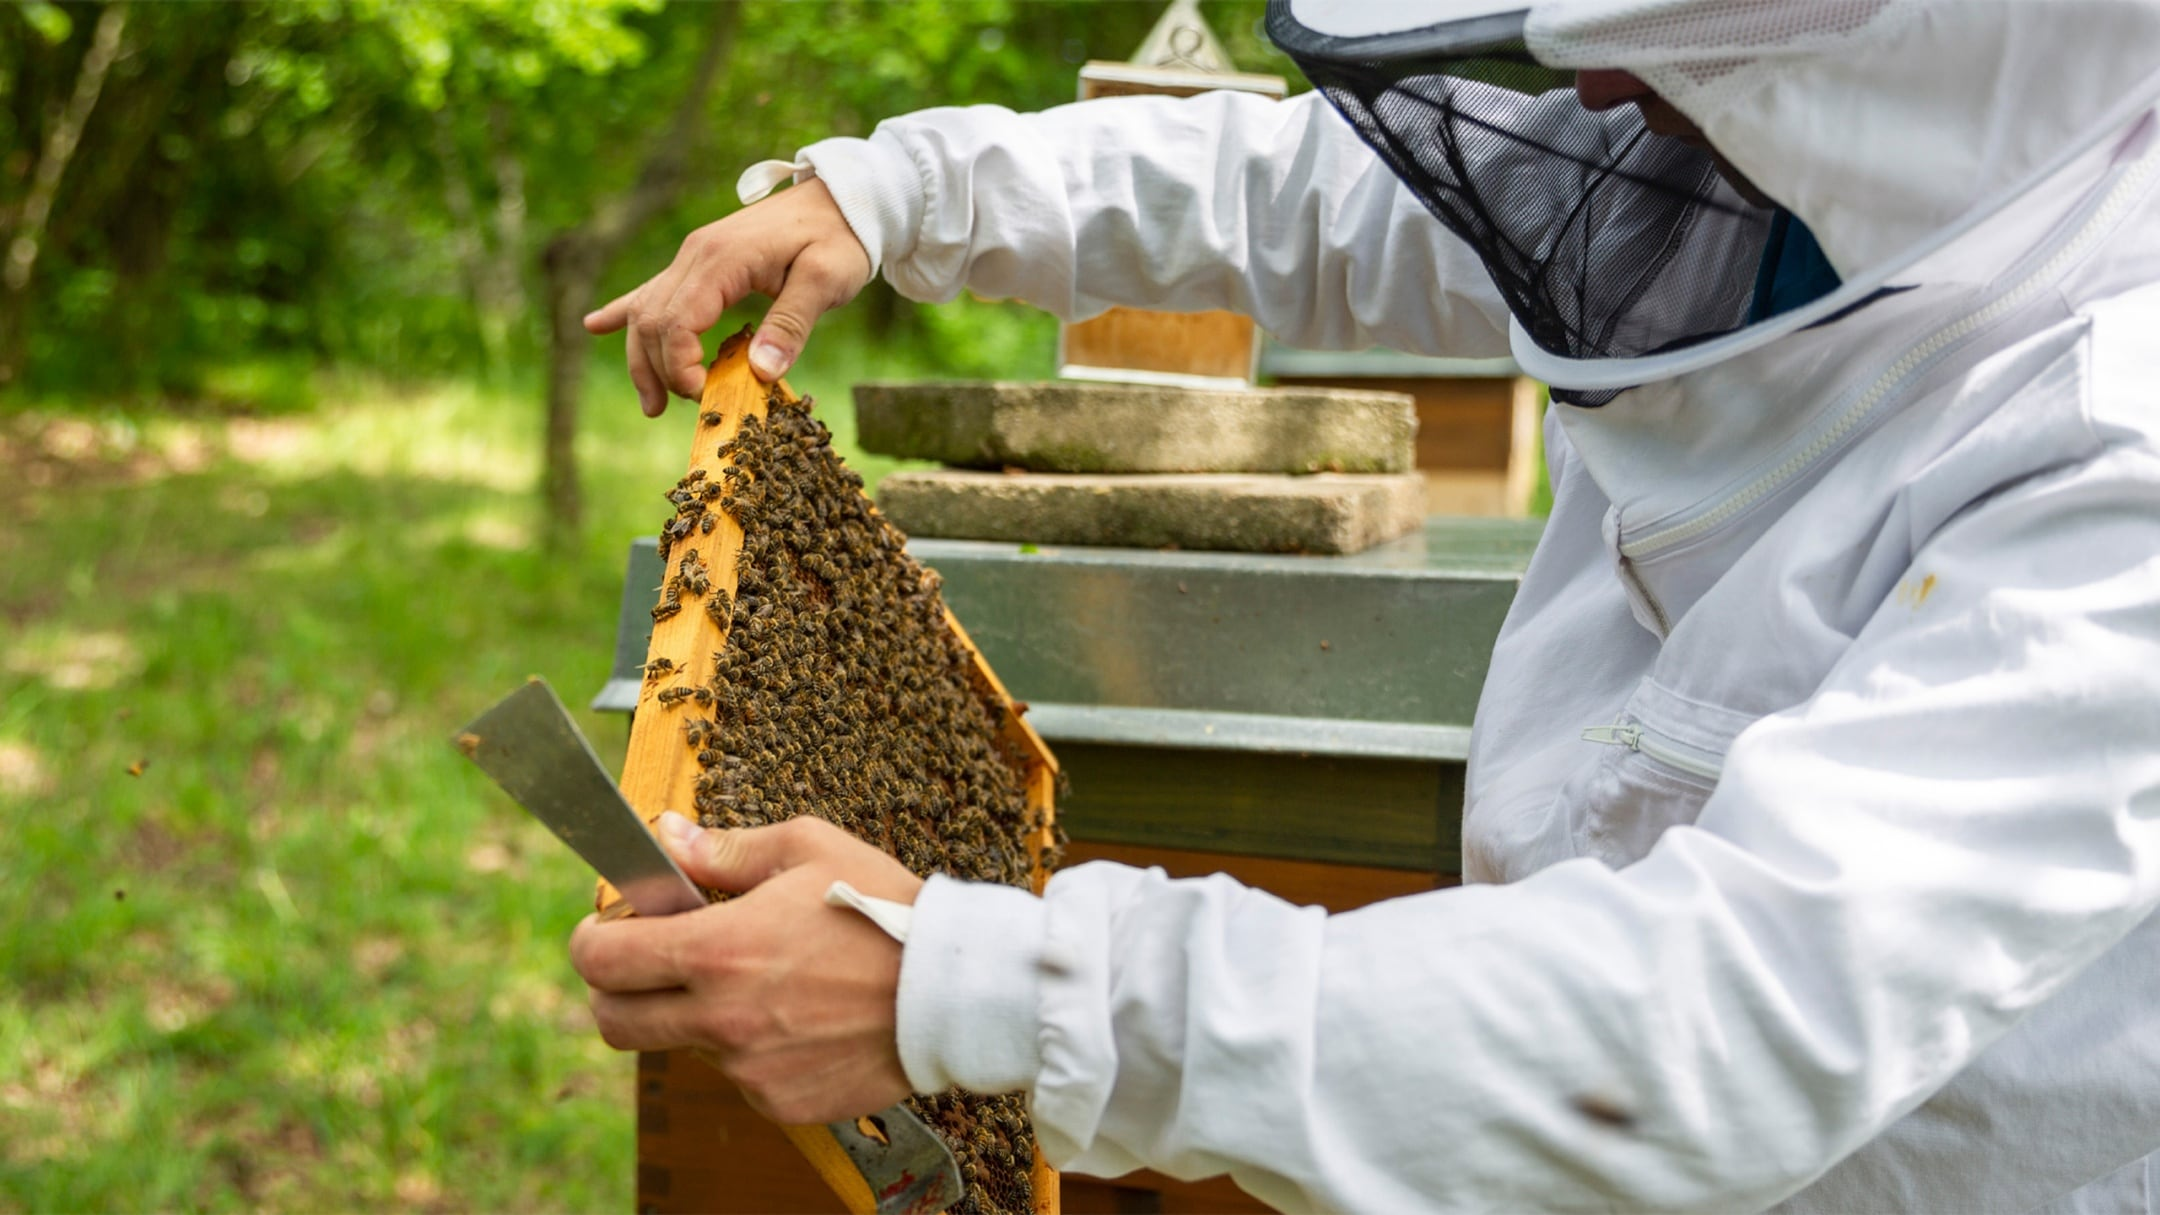 Two hands holding a honeycomb over an open beehive.